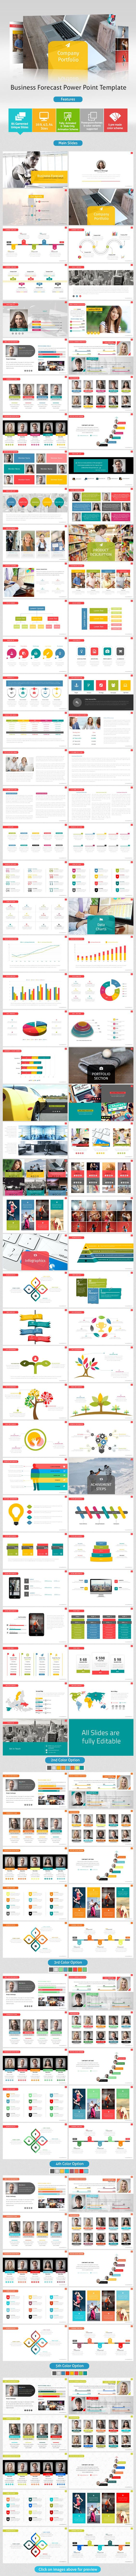 business forecast power point presentation (powerpoint templates, Presentation templates